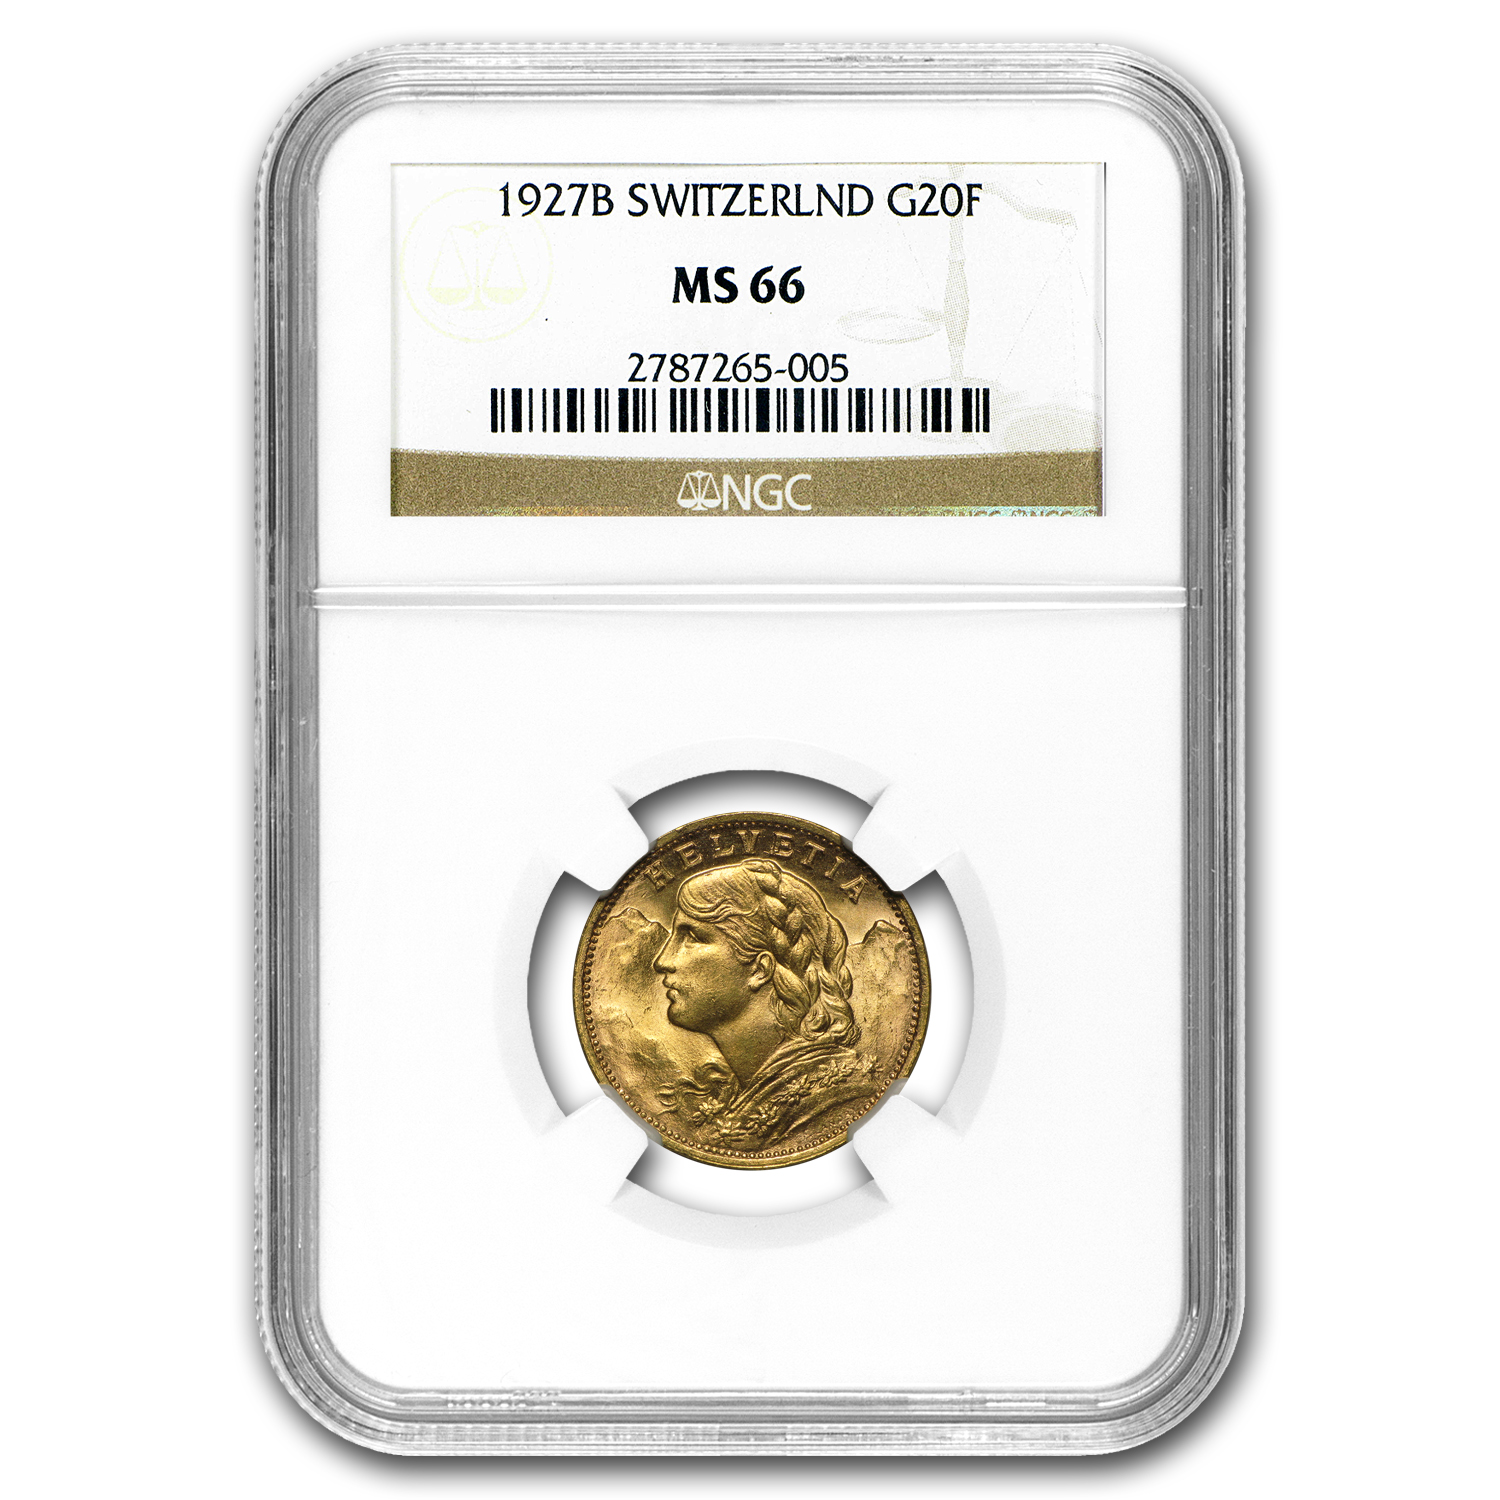 Switzerland 1901 - 1935 20 Francs Gold NGC MS-66